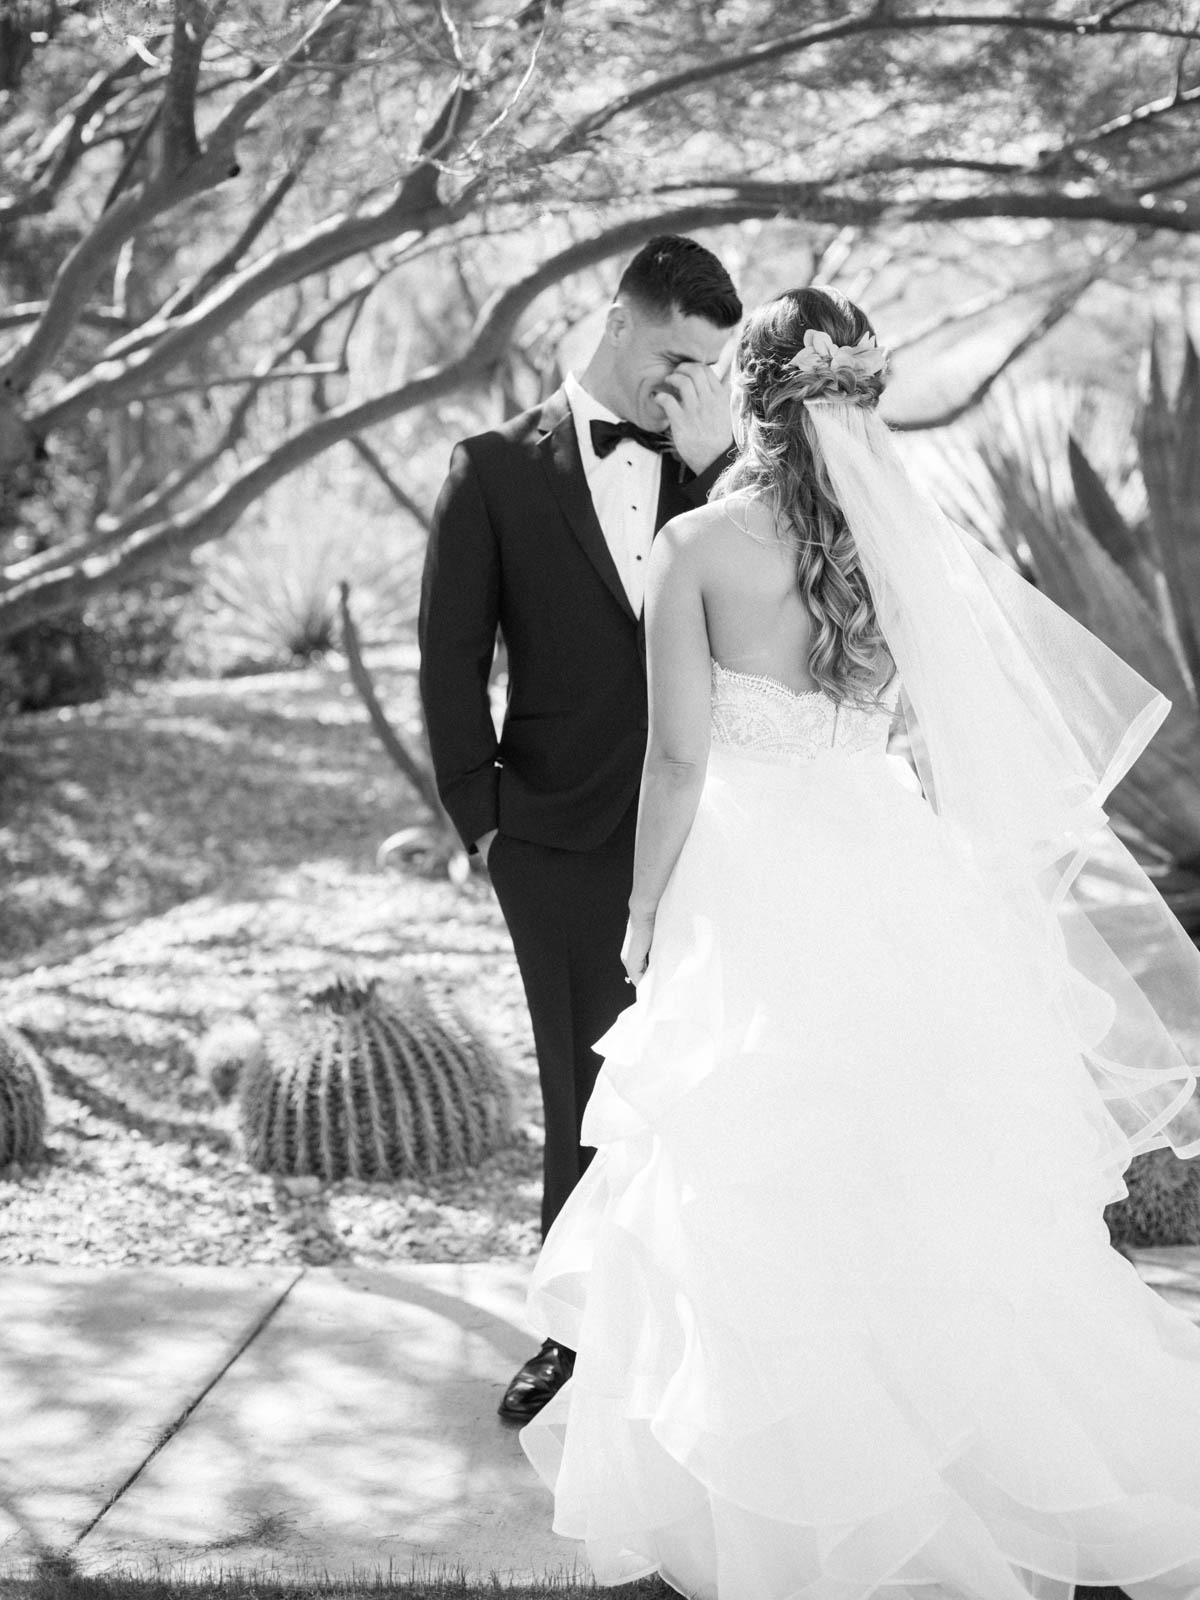 Perfect first look groom's reaction captured by Tucson Wedding Photographers Betsy & John